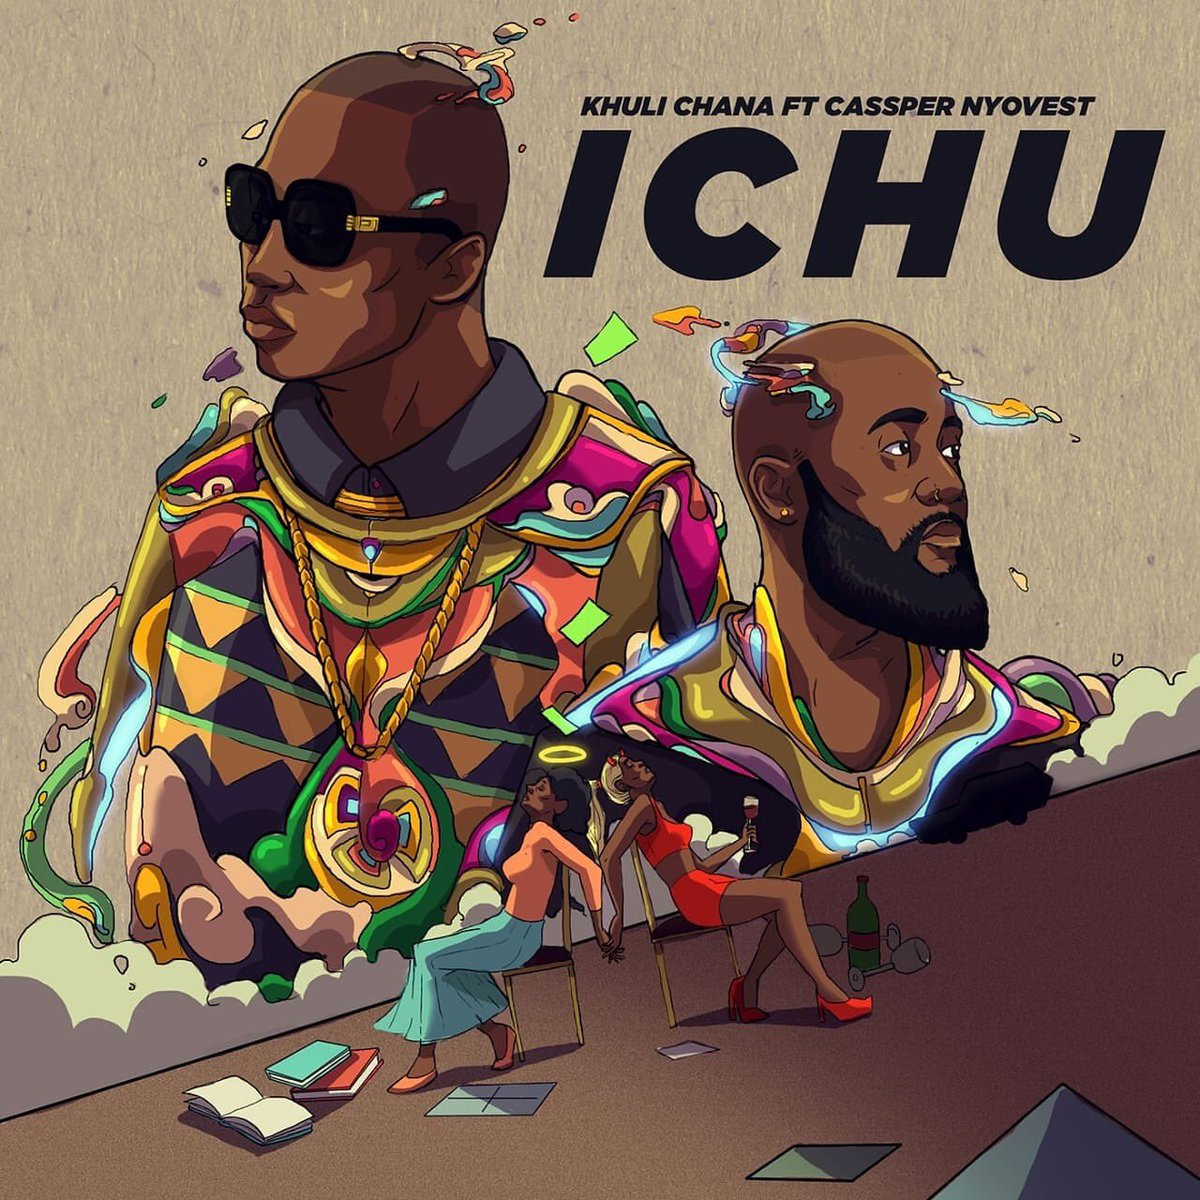 khuli chana New Khuli Chana x Cassper Nyovest #Ichu Single On The Way D Qhj2OUEAEBtie